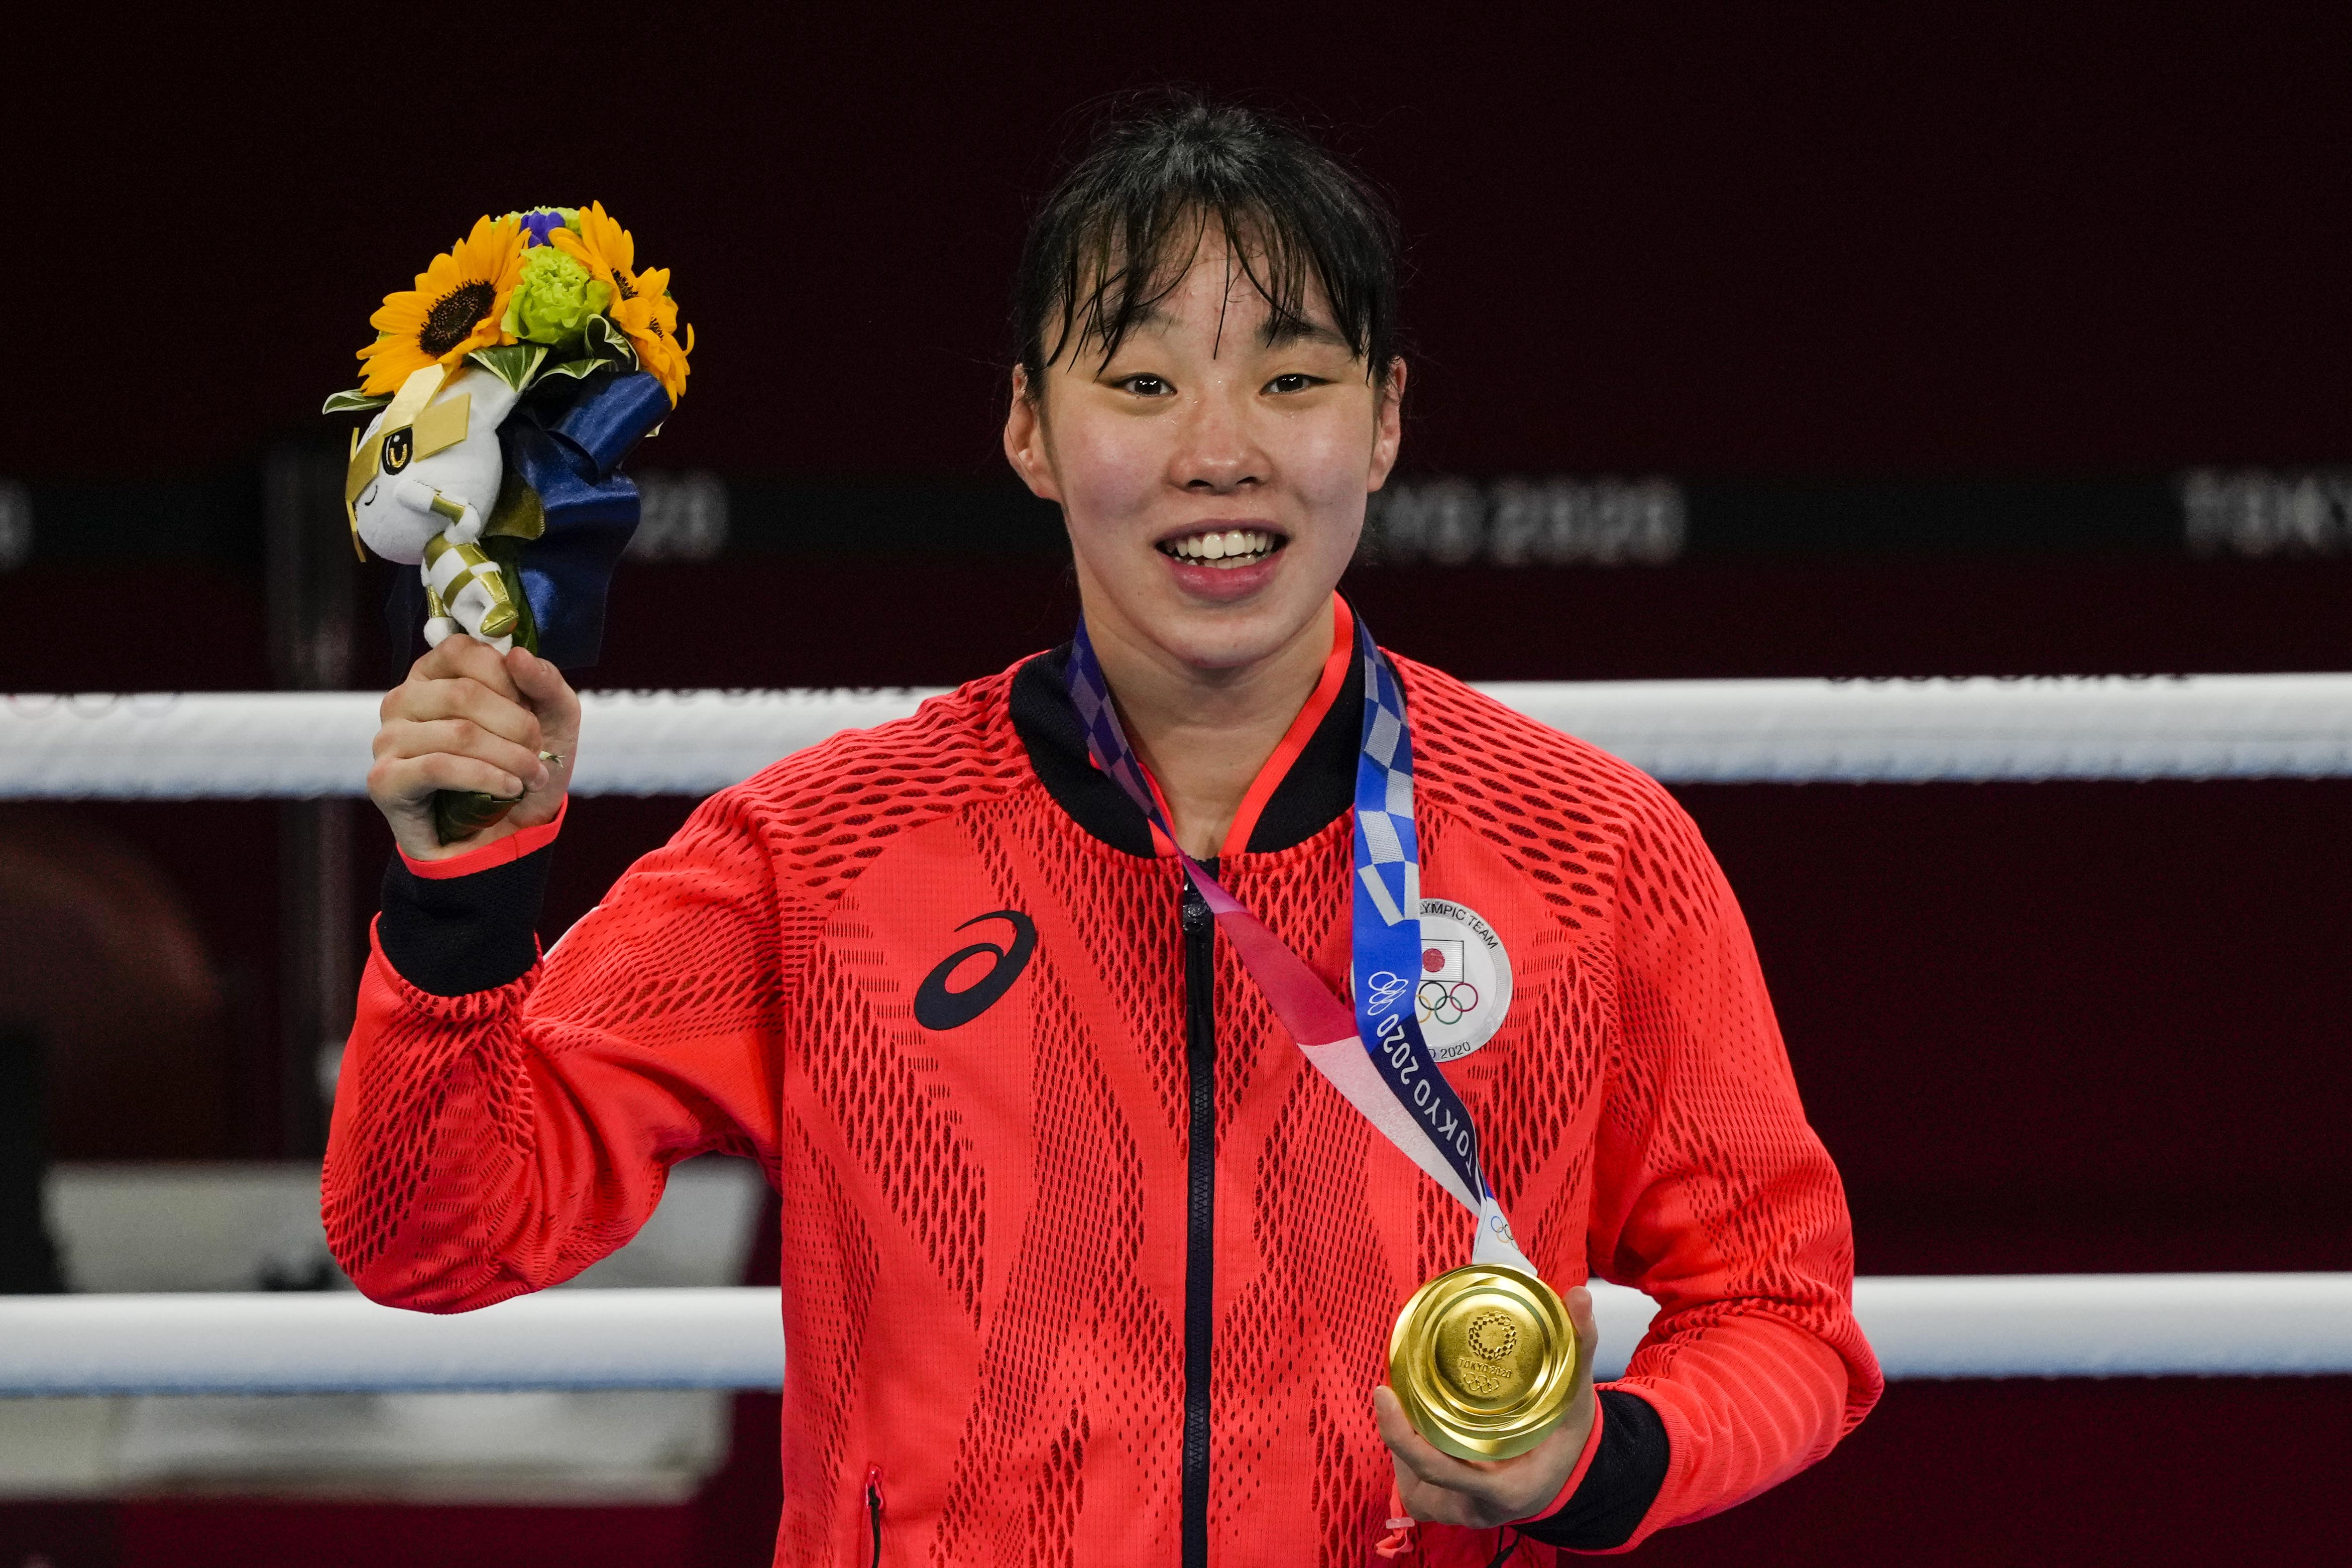 Sena Irie becomes first Japanese woman to win Olympic gold in boxing